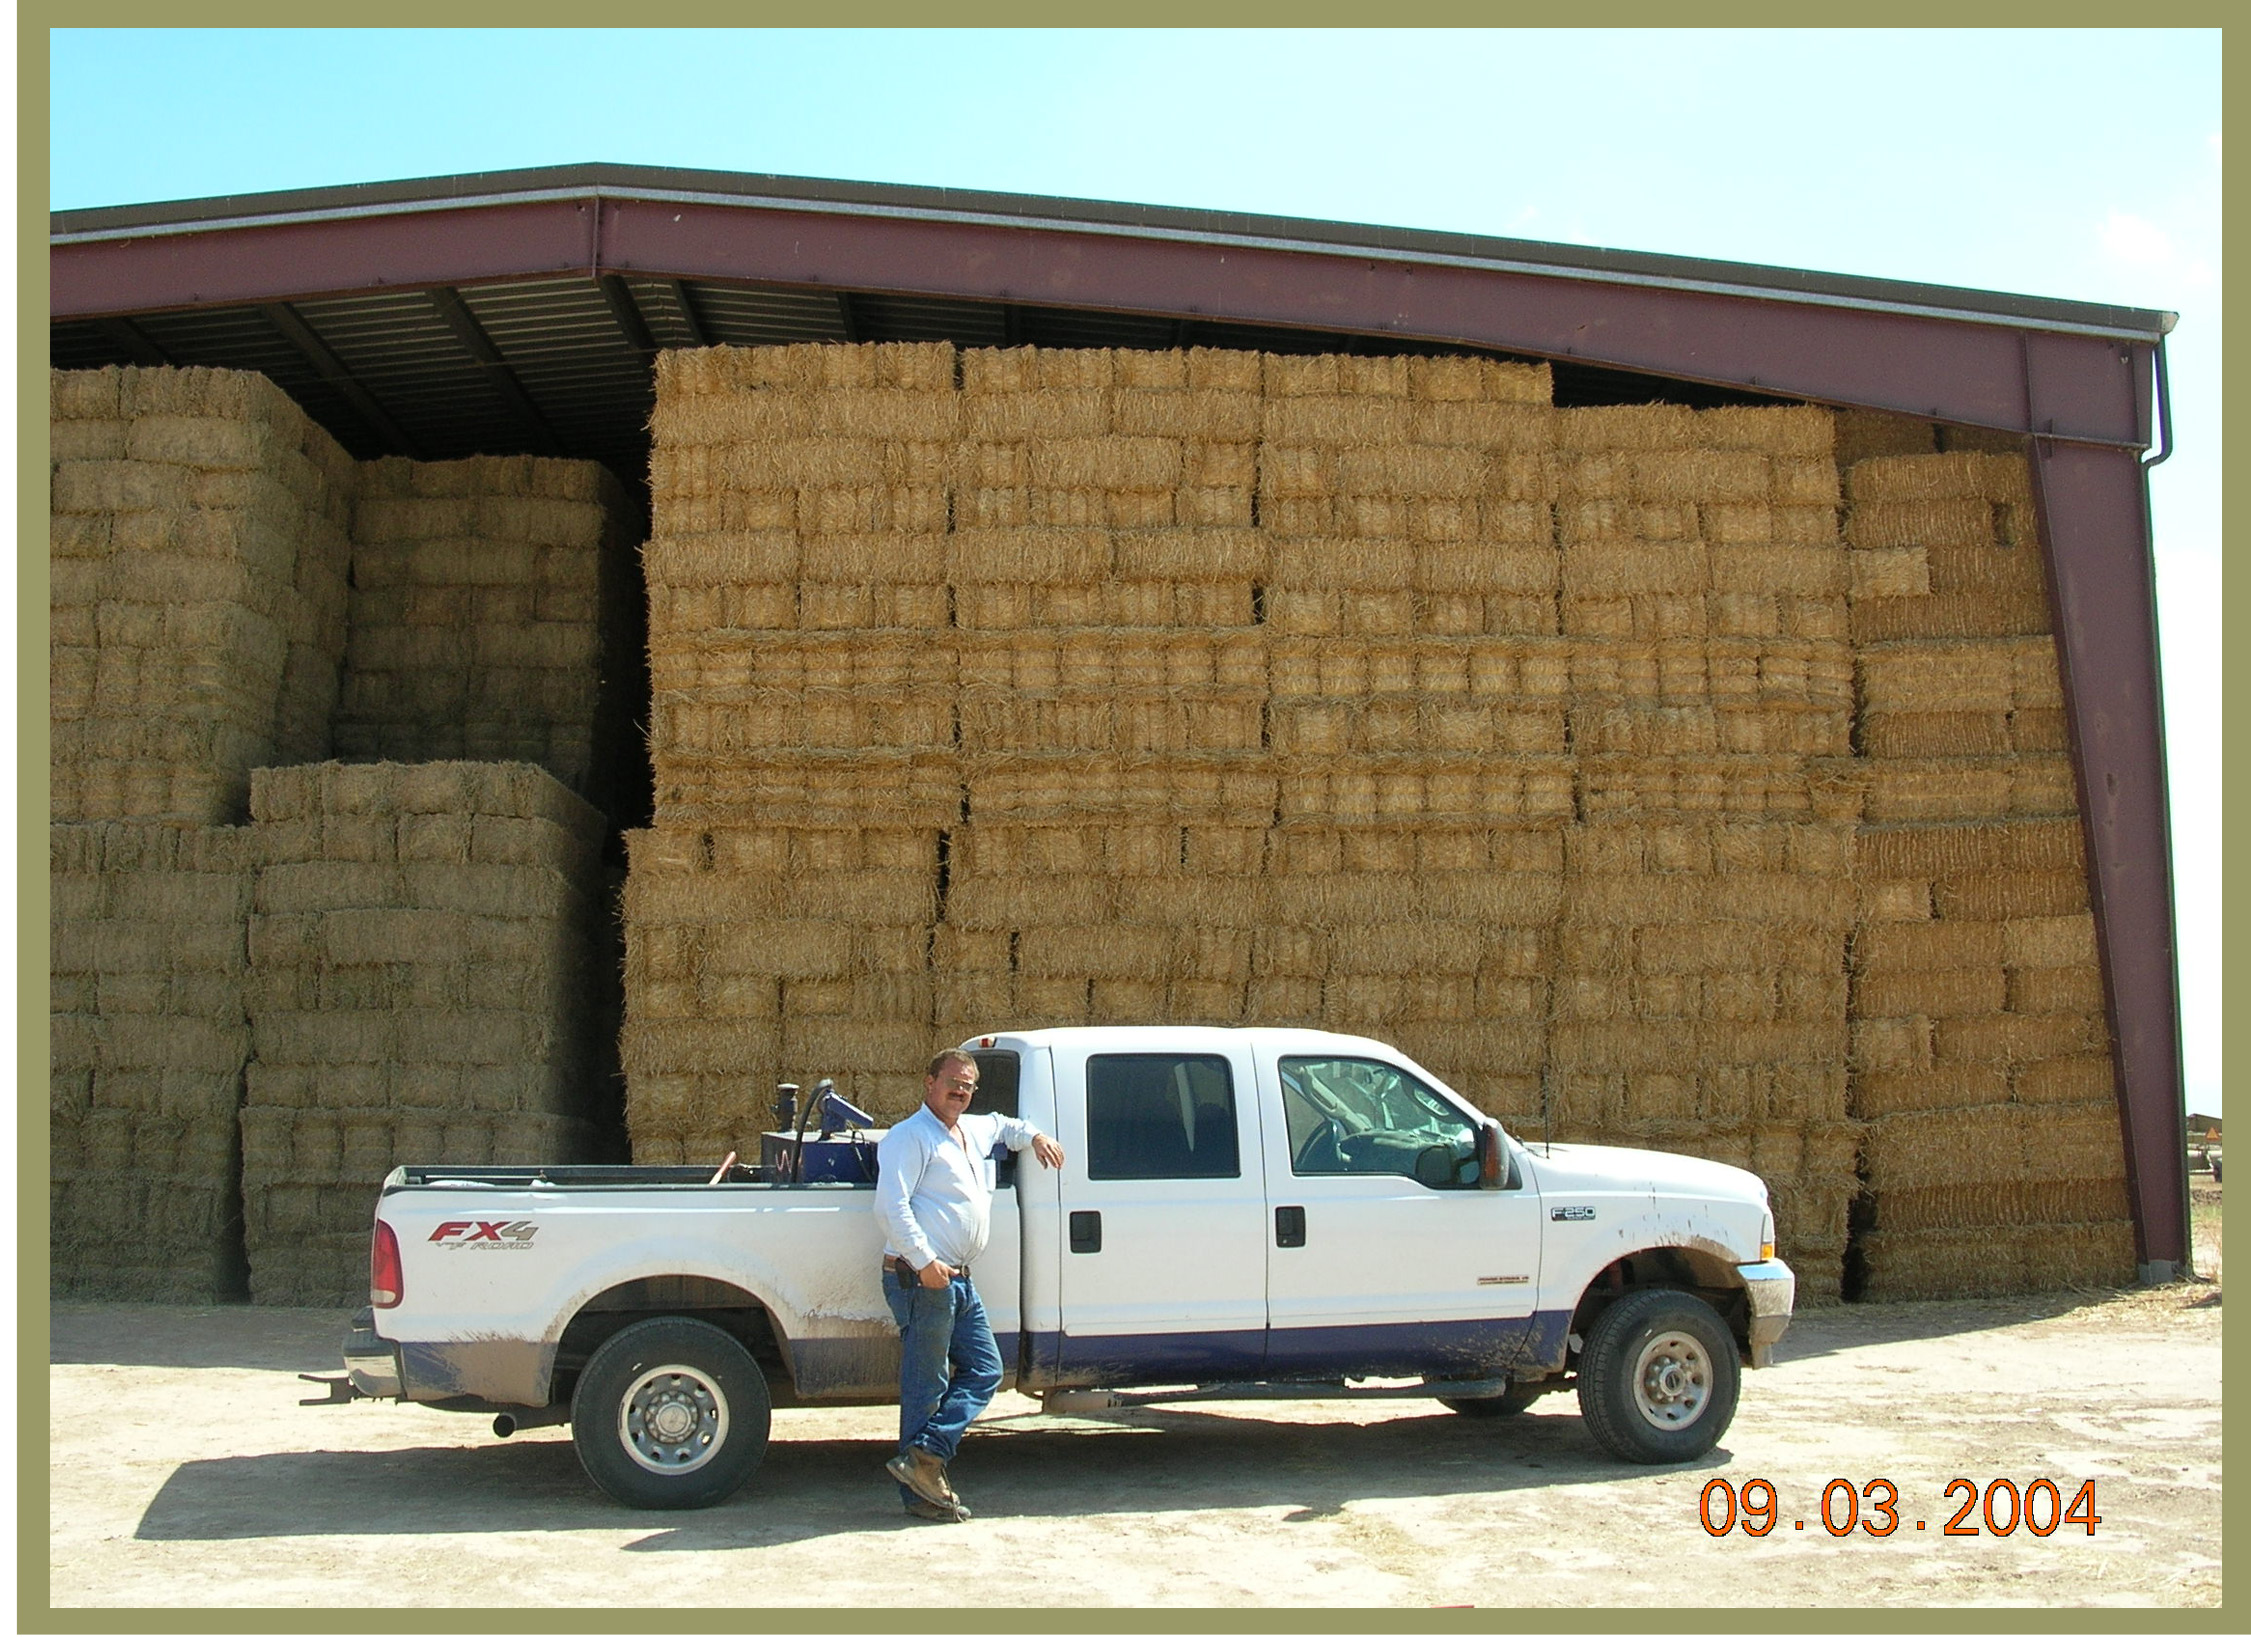 Ronald Leimgruber in front of his hay barns